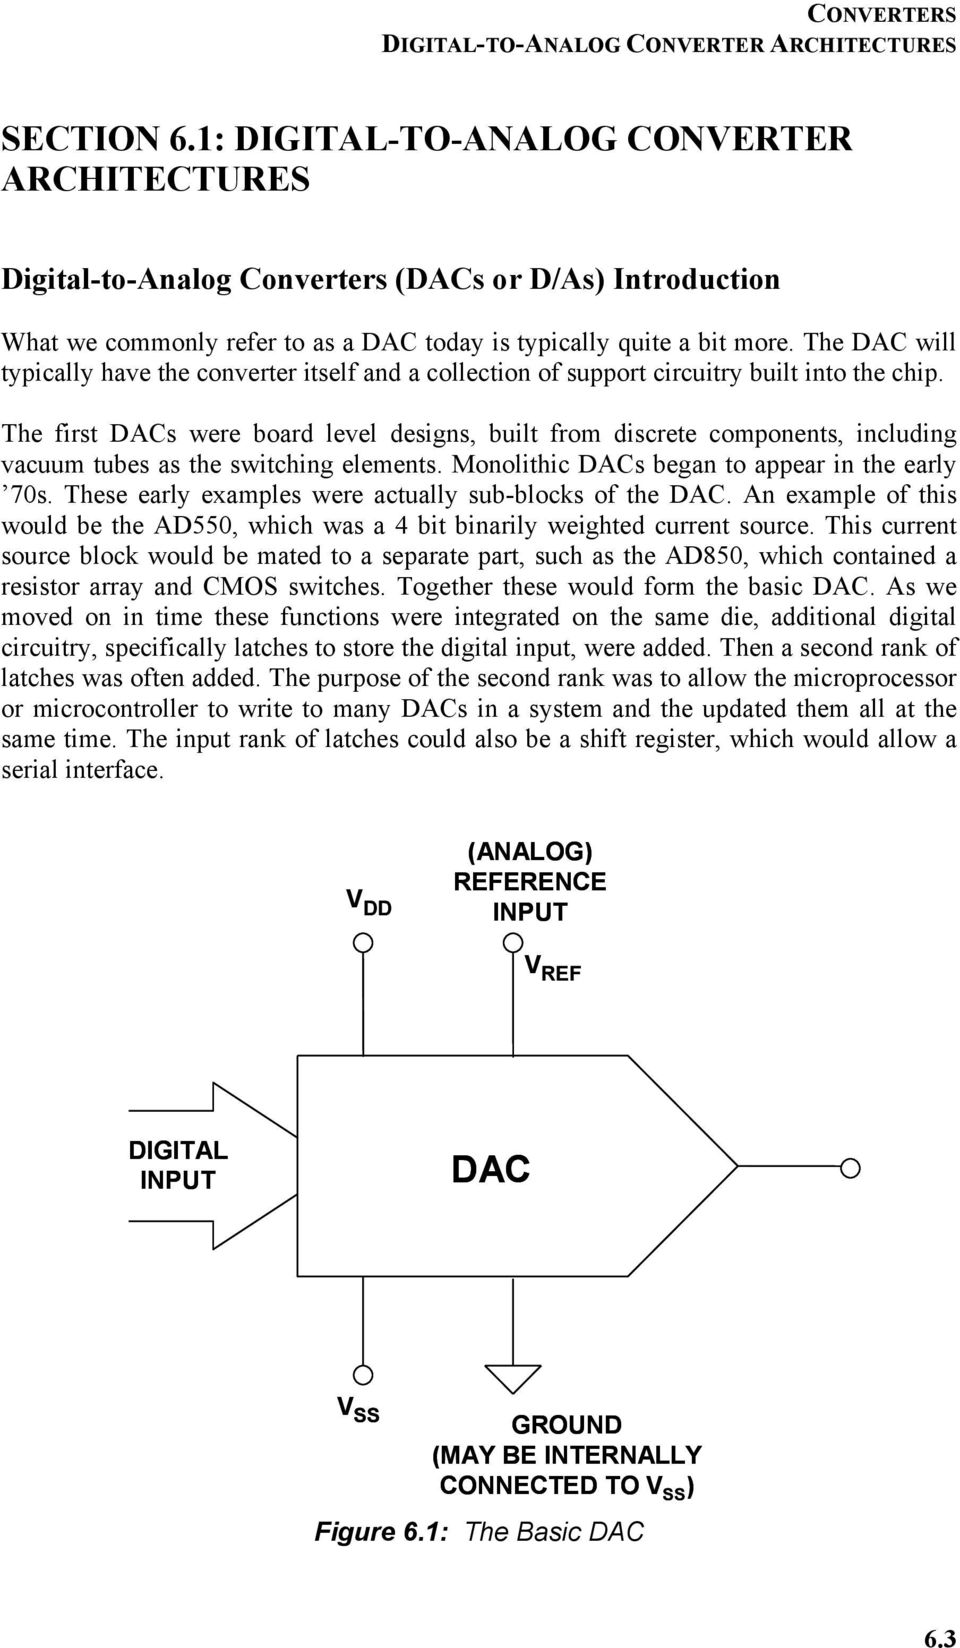 Chapter 6 Converters Pdf Cmos Integrated Analogtodigital And Digitaltoanalog The Dac Will Typically Have Converter Itself A Collection Of Support Circuitry Built Into